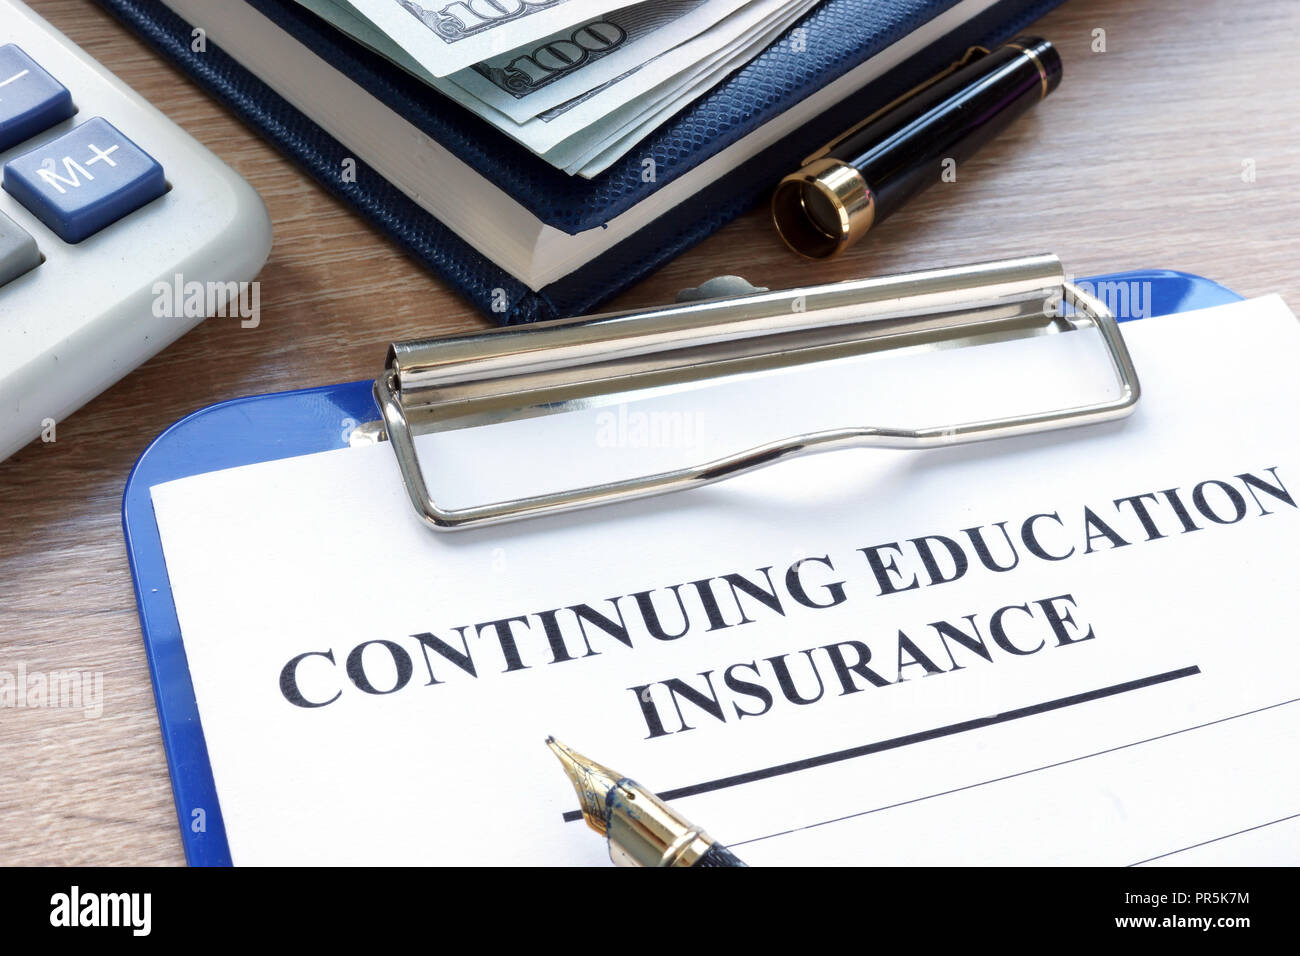 Continuing Education Insurance policy and the pen. - Stock Image